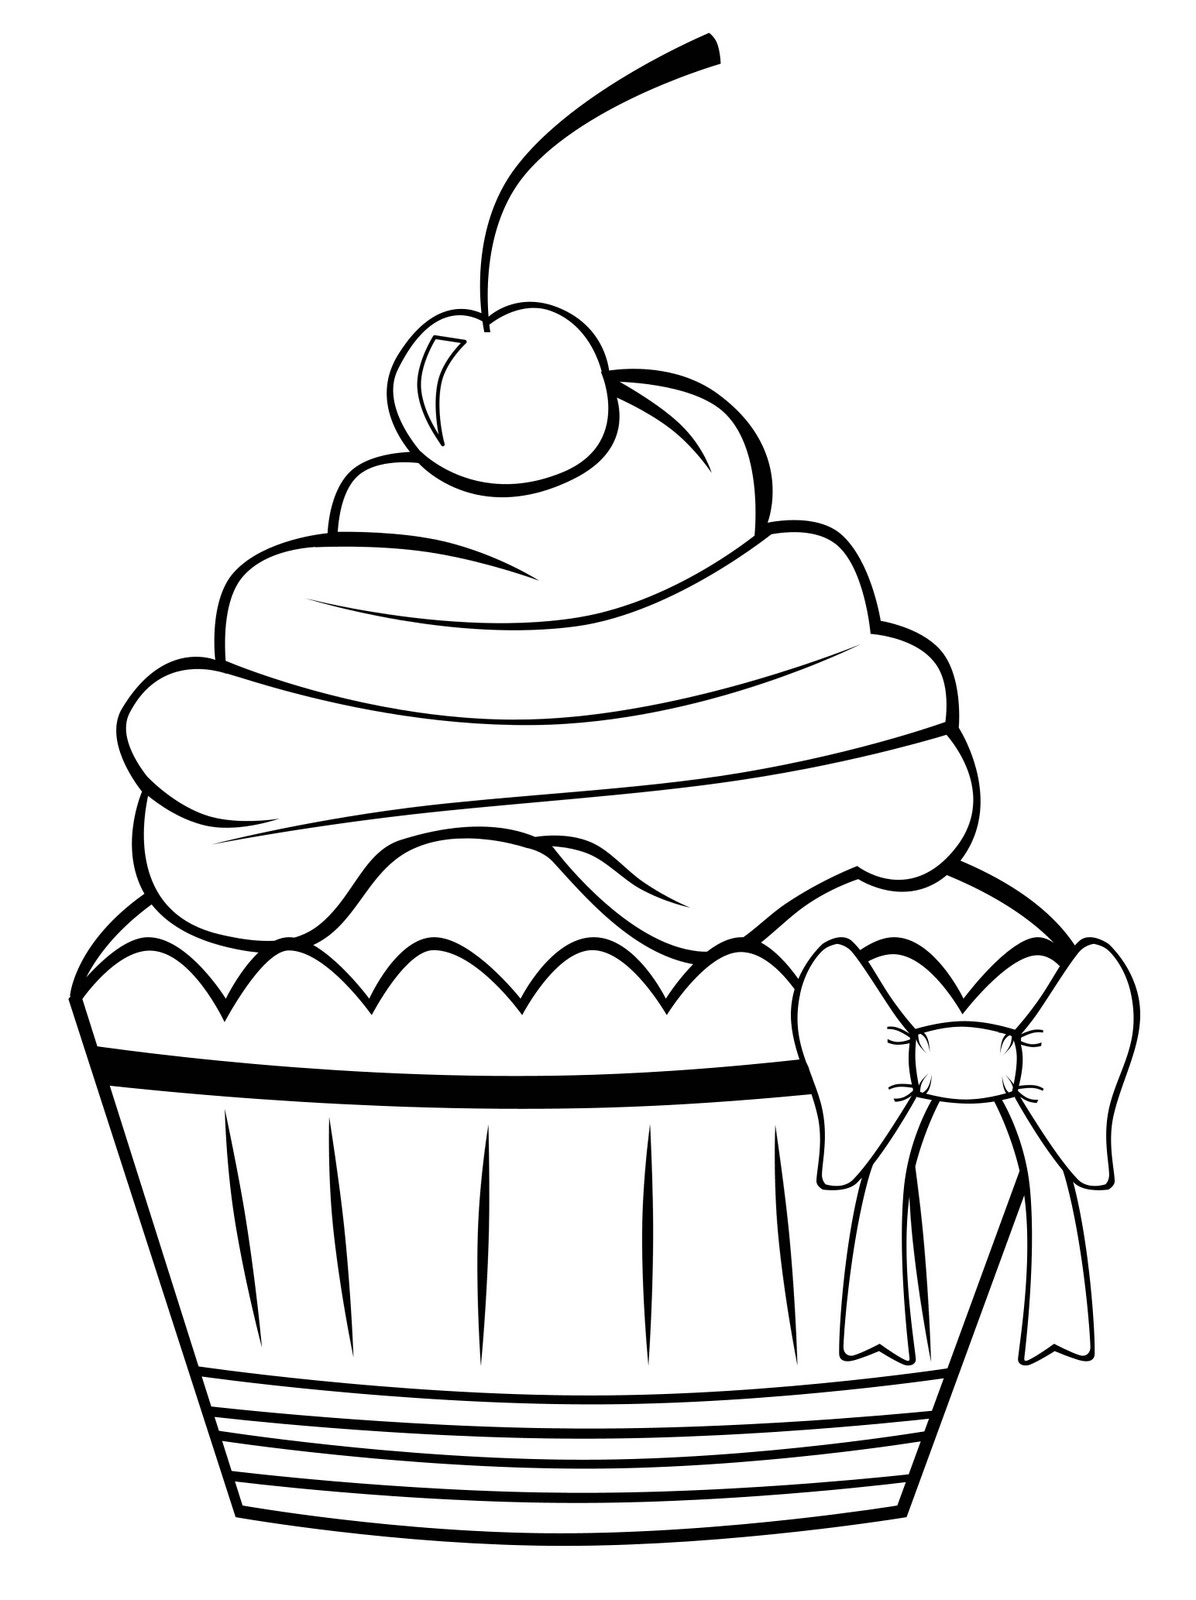 Kids Coloring Pages : Cupcake Coloring Pages